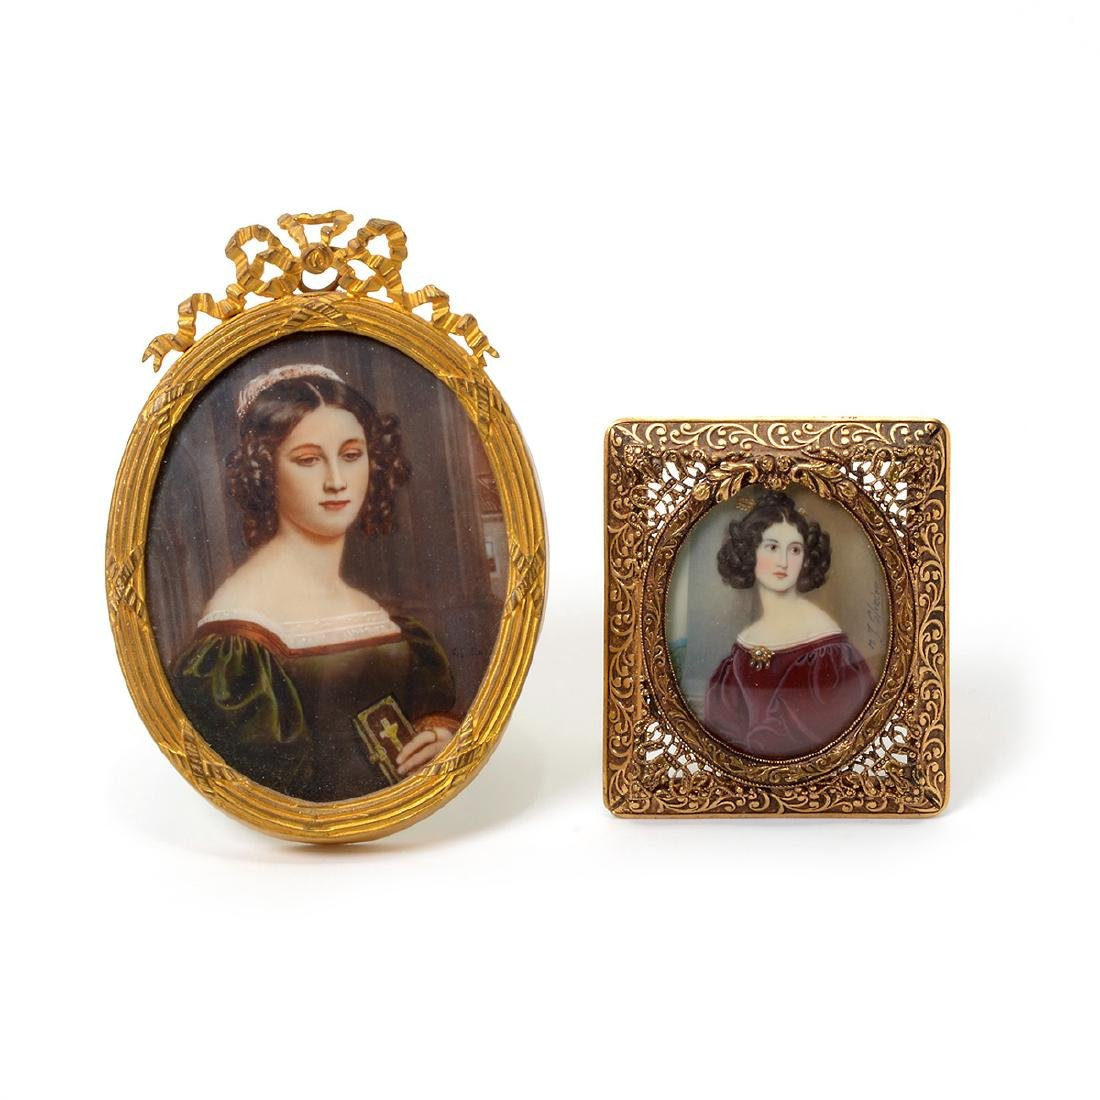 Six Miniature Portraits of Pre-Civil War Era Women - 2